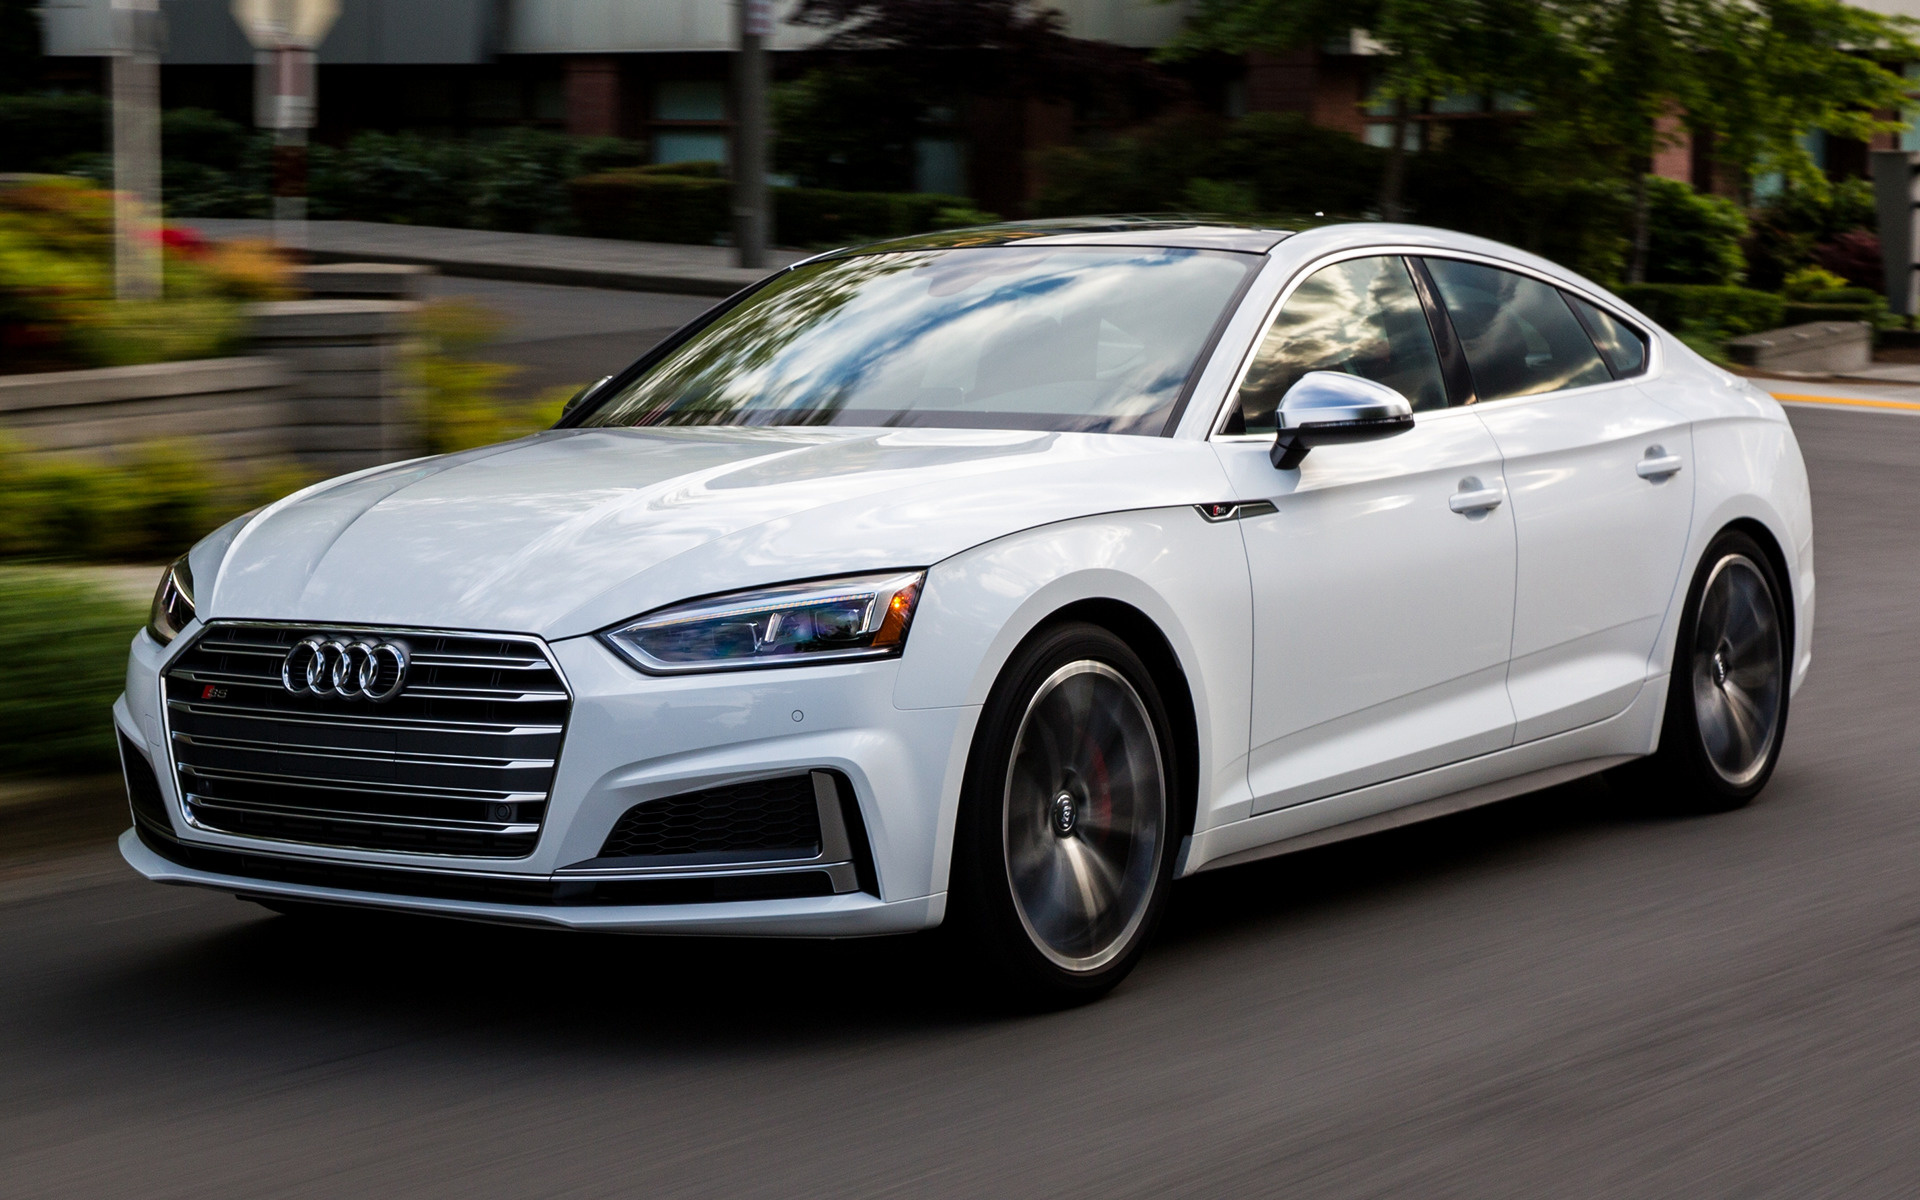 2018 Hyundai Genesis Coupe >> 2018 Audi S5 Sportback (US) - Wallpapers and HD Images ...